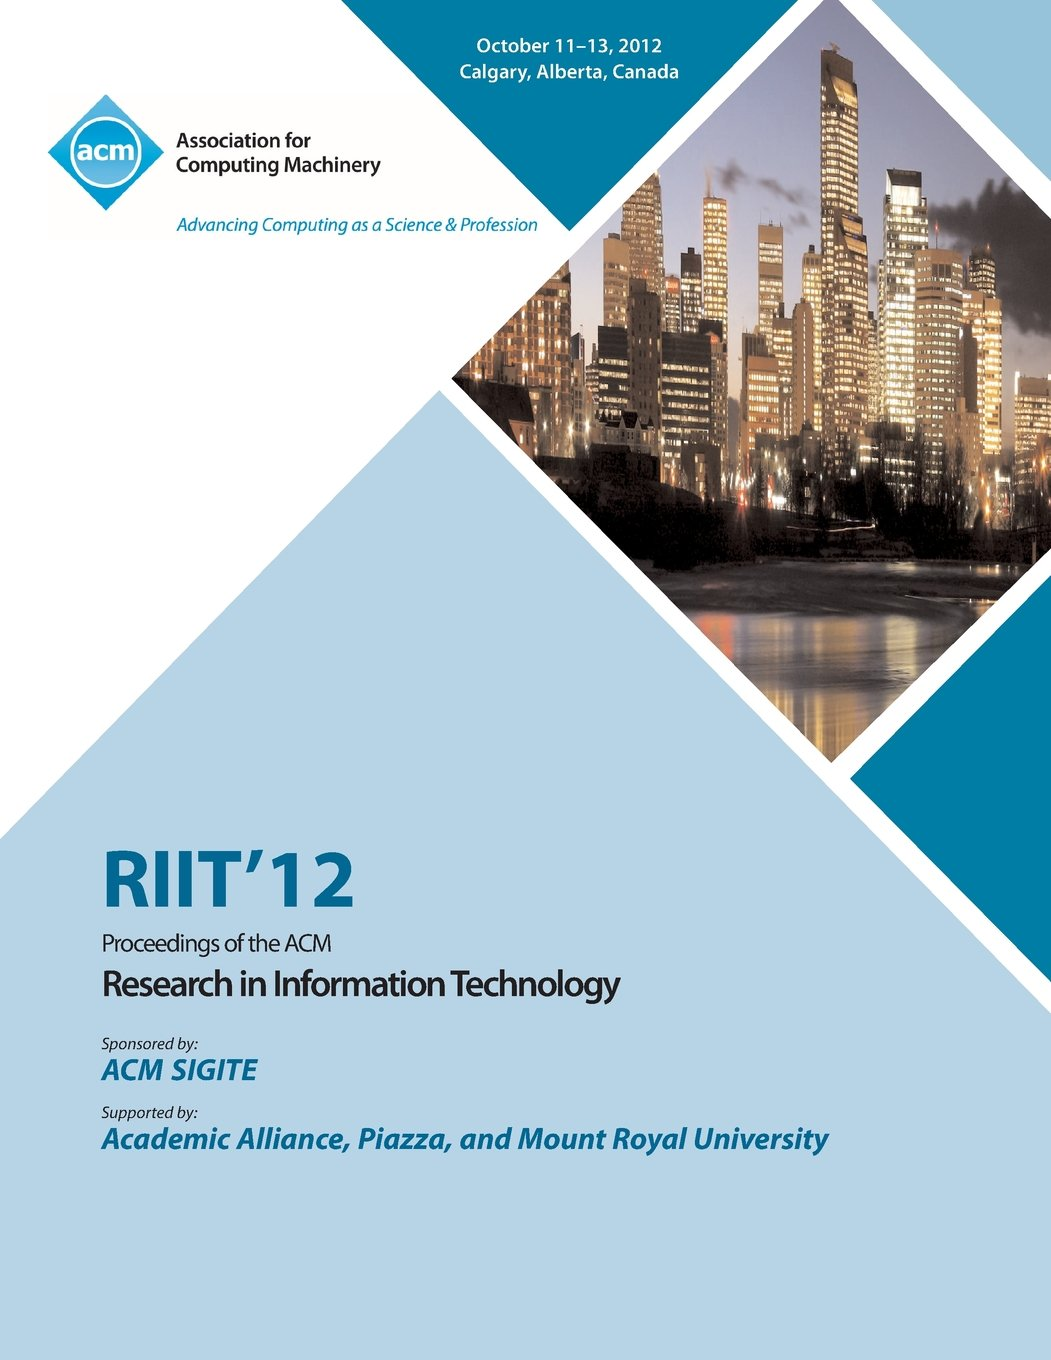 Riit 12 Proceedings of the ACM Research in Information Technology ebook